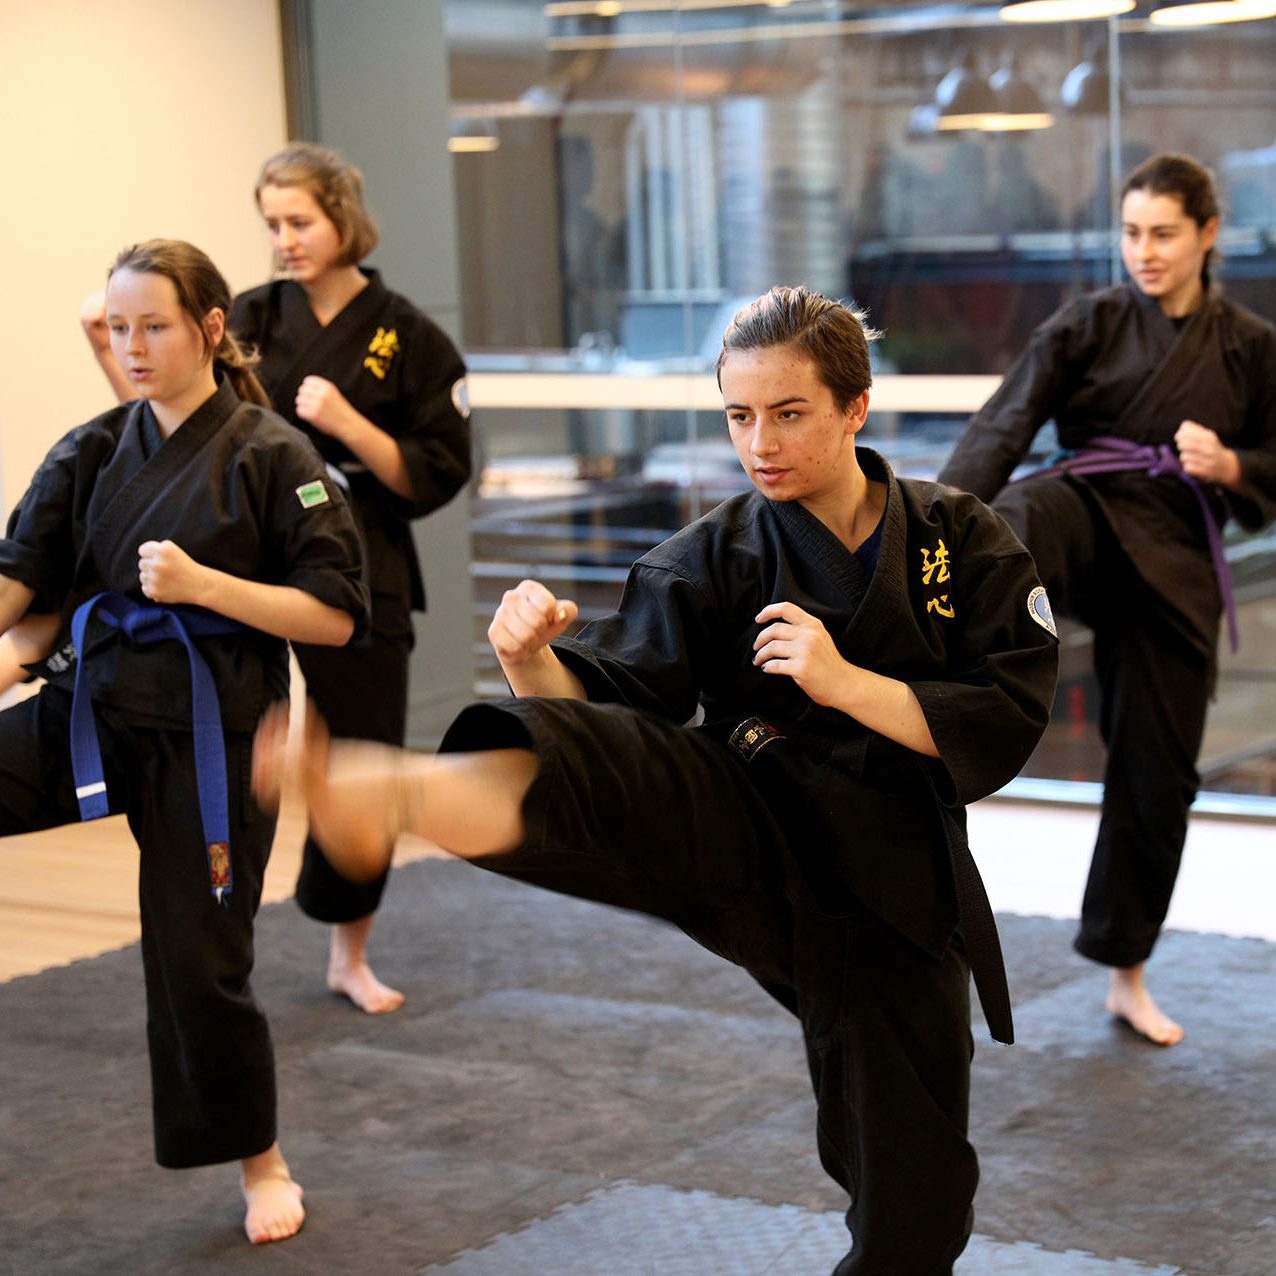 Self Defence & Safety Skills – January School Holidays Guide